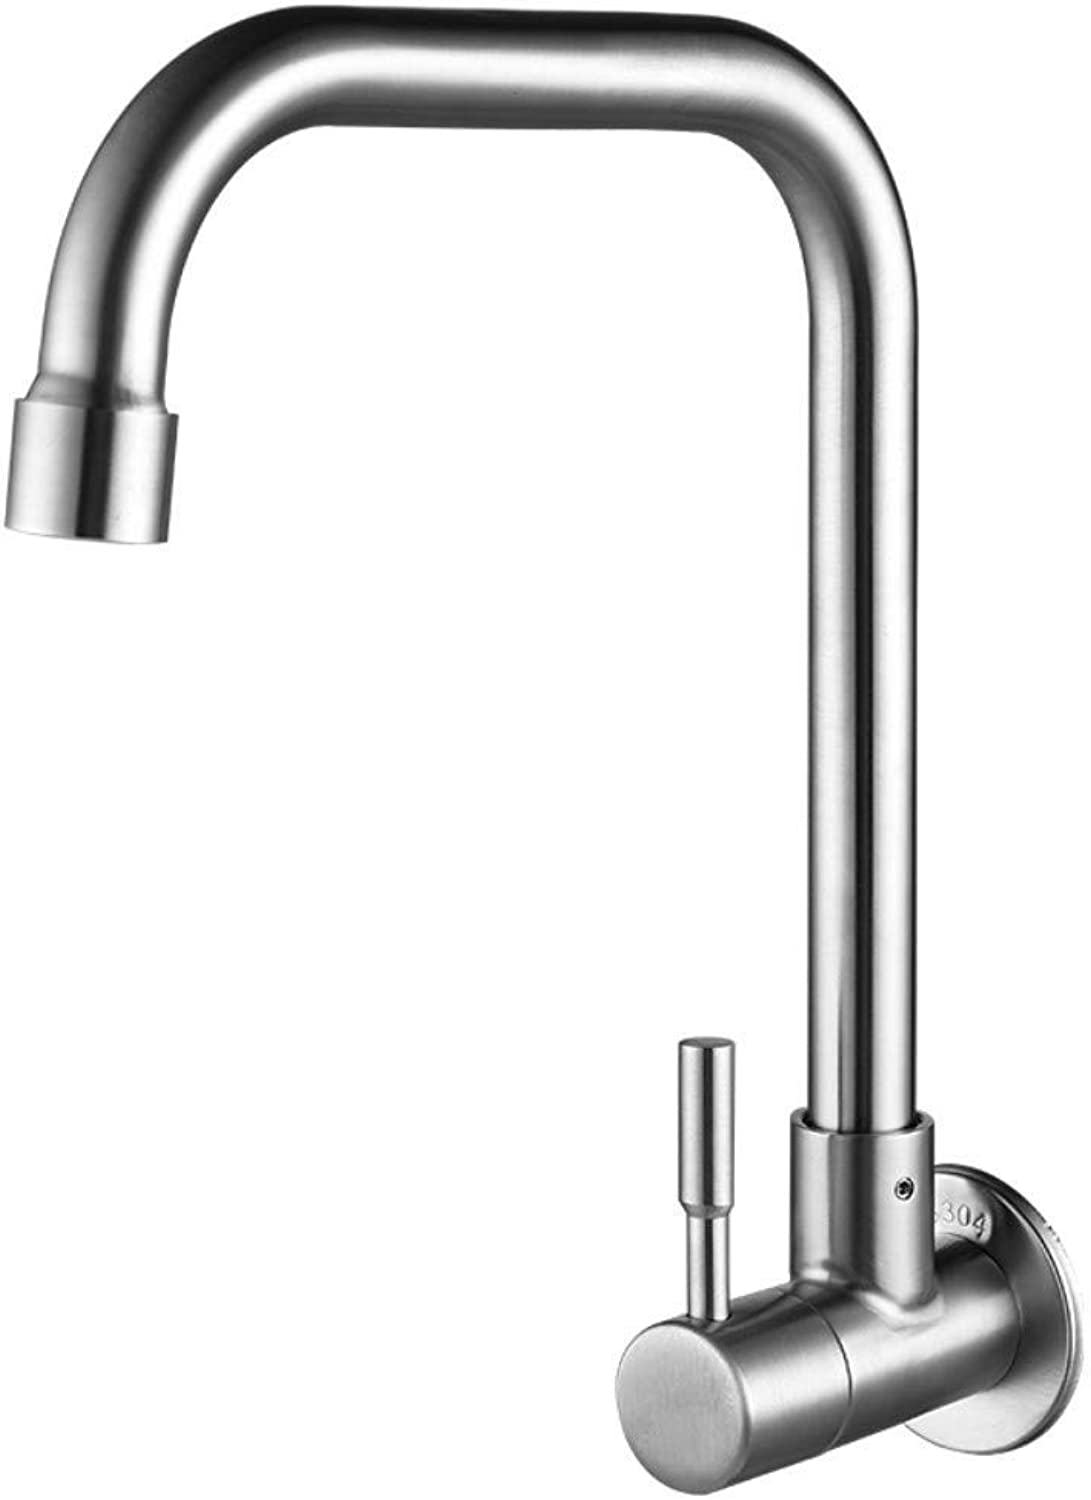 Faucet .Wall-Mounted Single Cold 304 Stainless Steel Kitchen Faucet can be redated